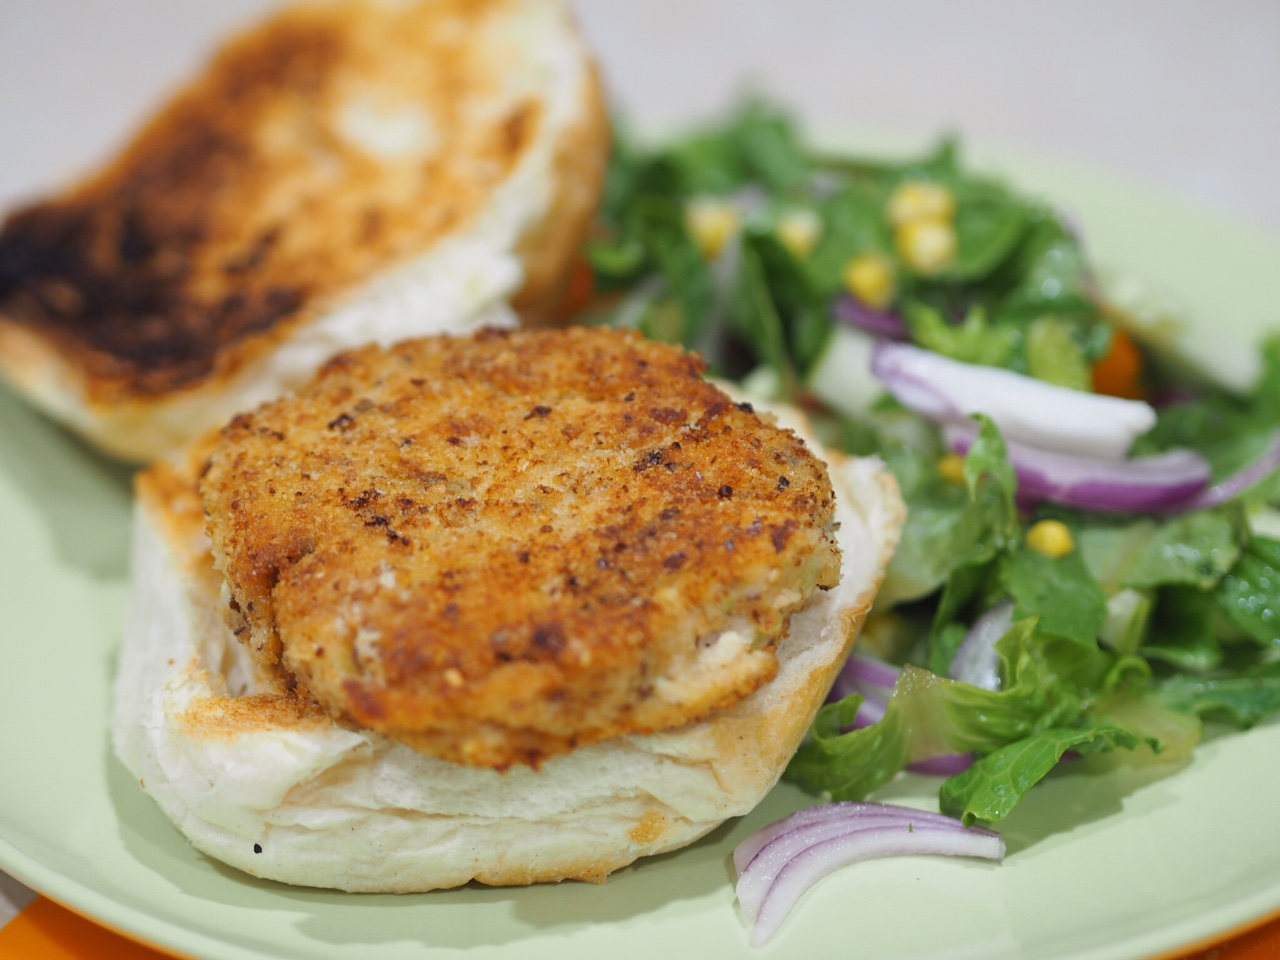 Chicken and Zucchini Burger Patties